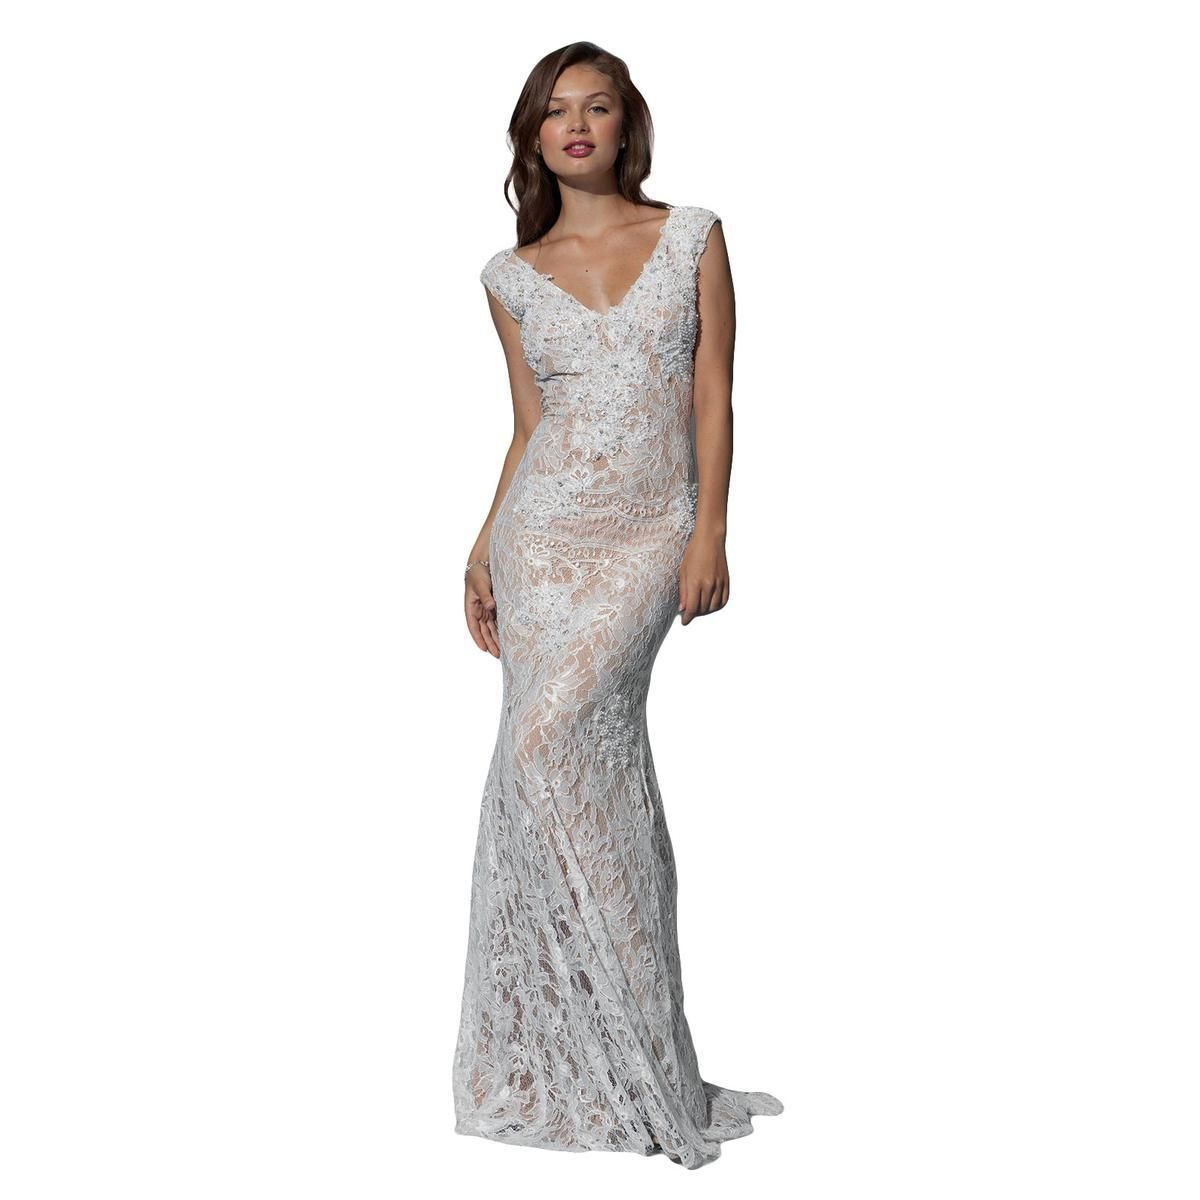 Details About 998 Nwt Lace Jovani Prompageantformalwedding Dress